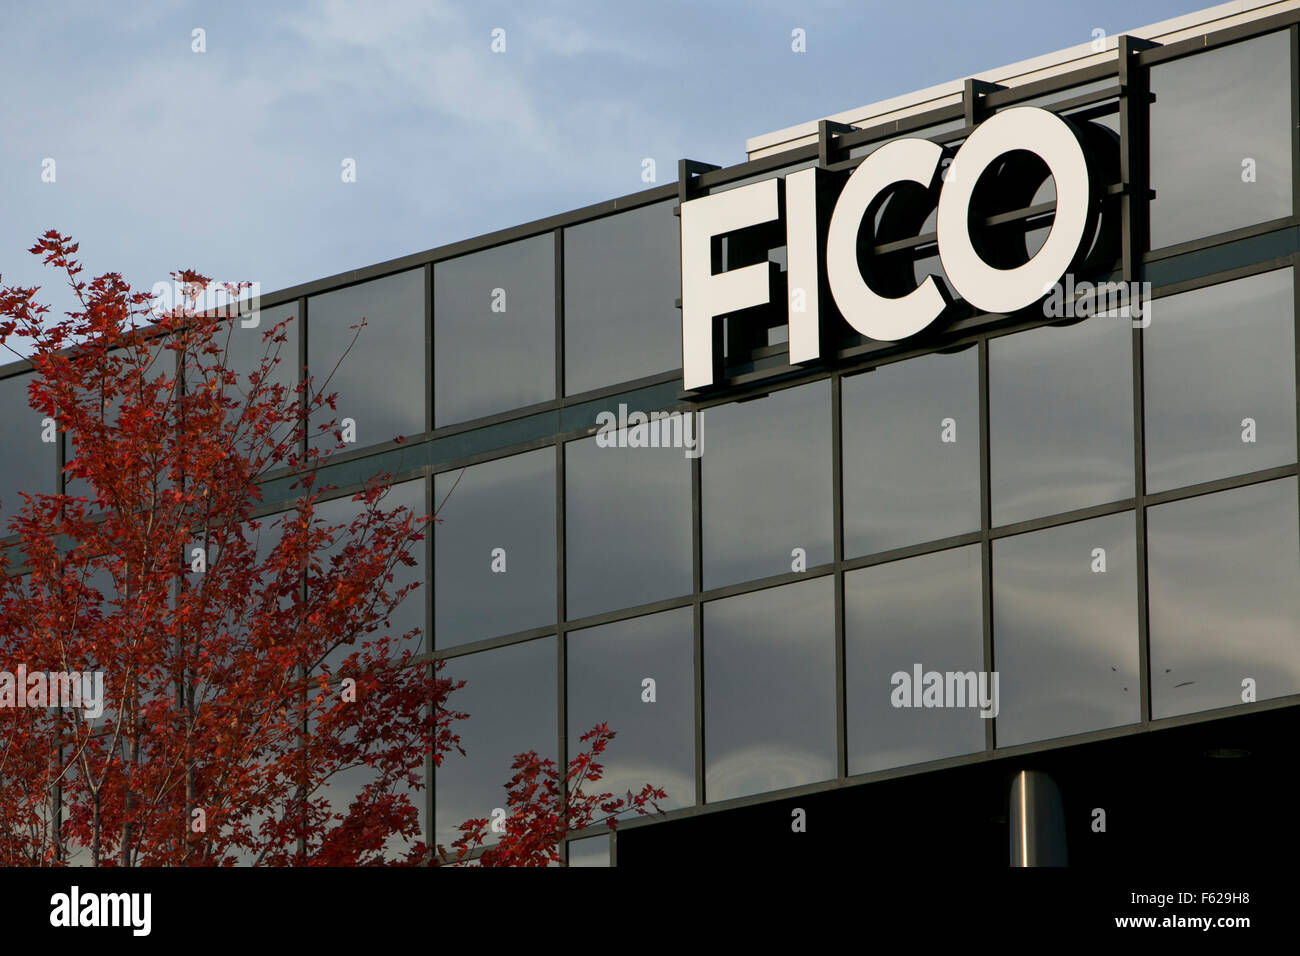 A logo sign outside of a facility occupied FICO in St. Paul, Minnesota on October 25, 2015. - Stock Image